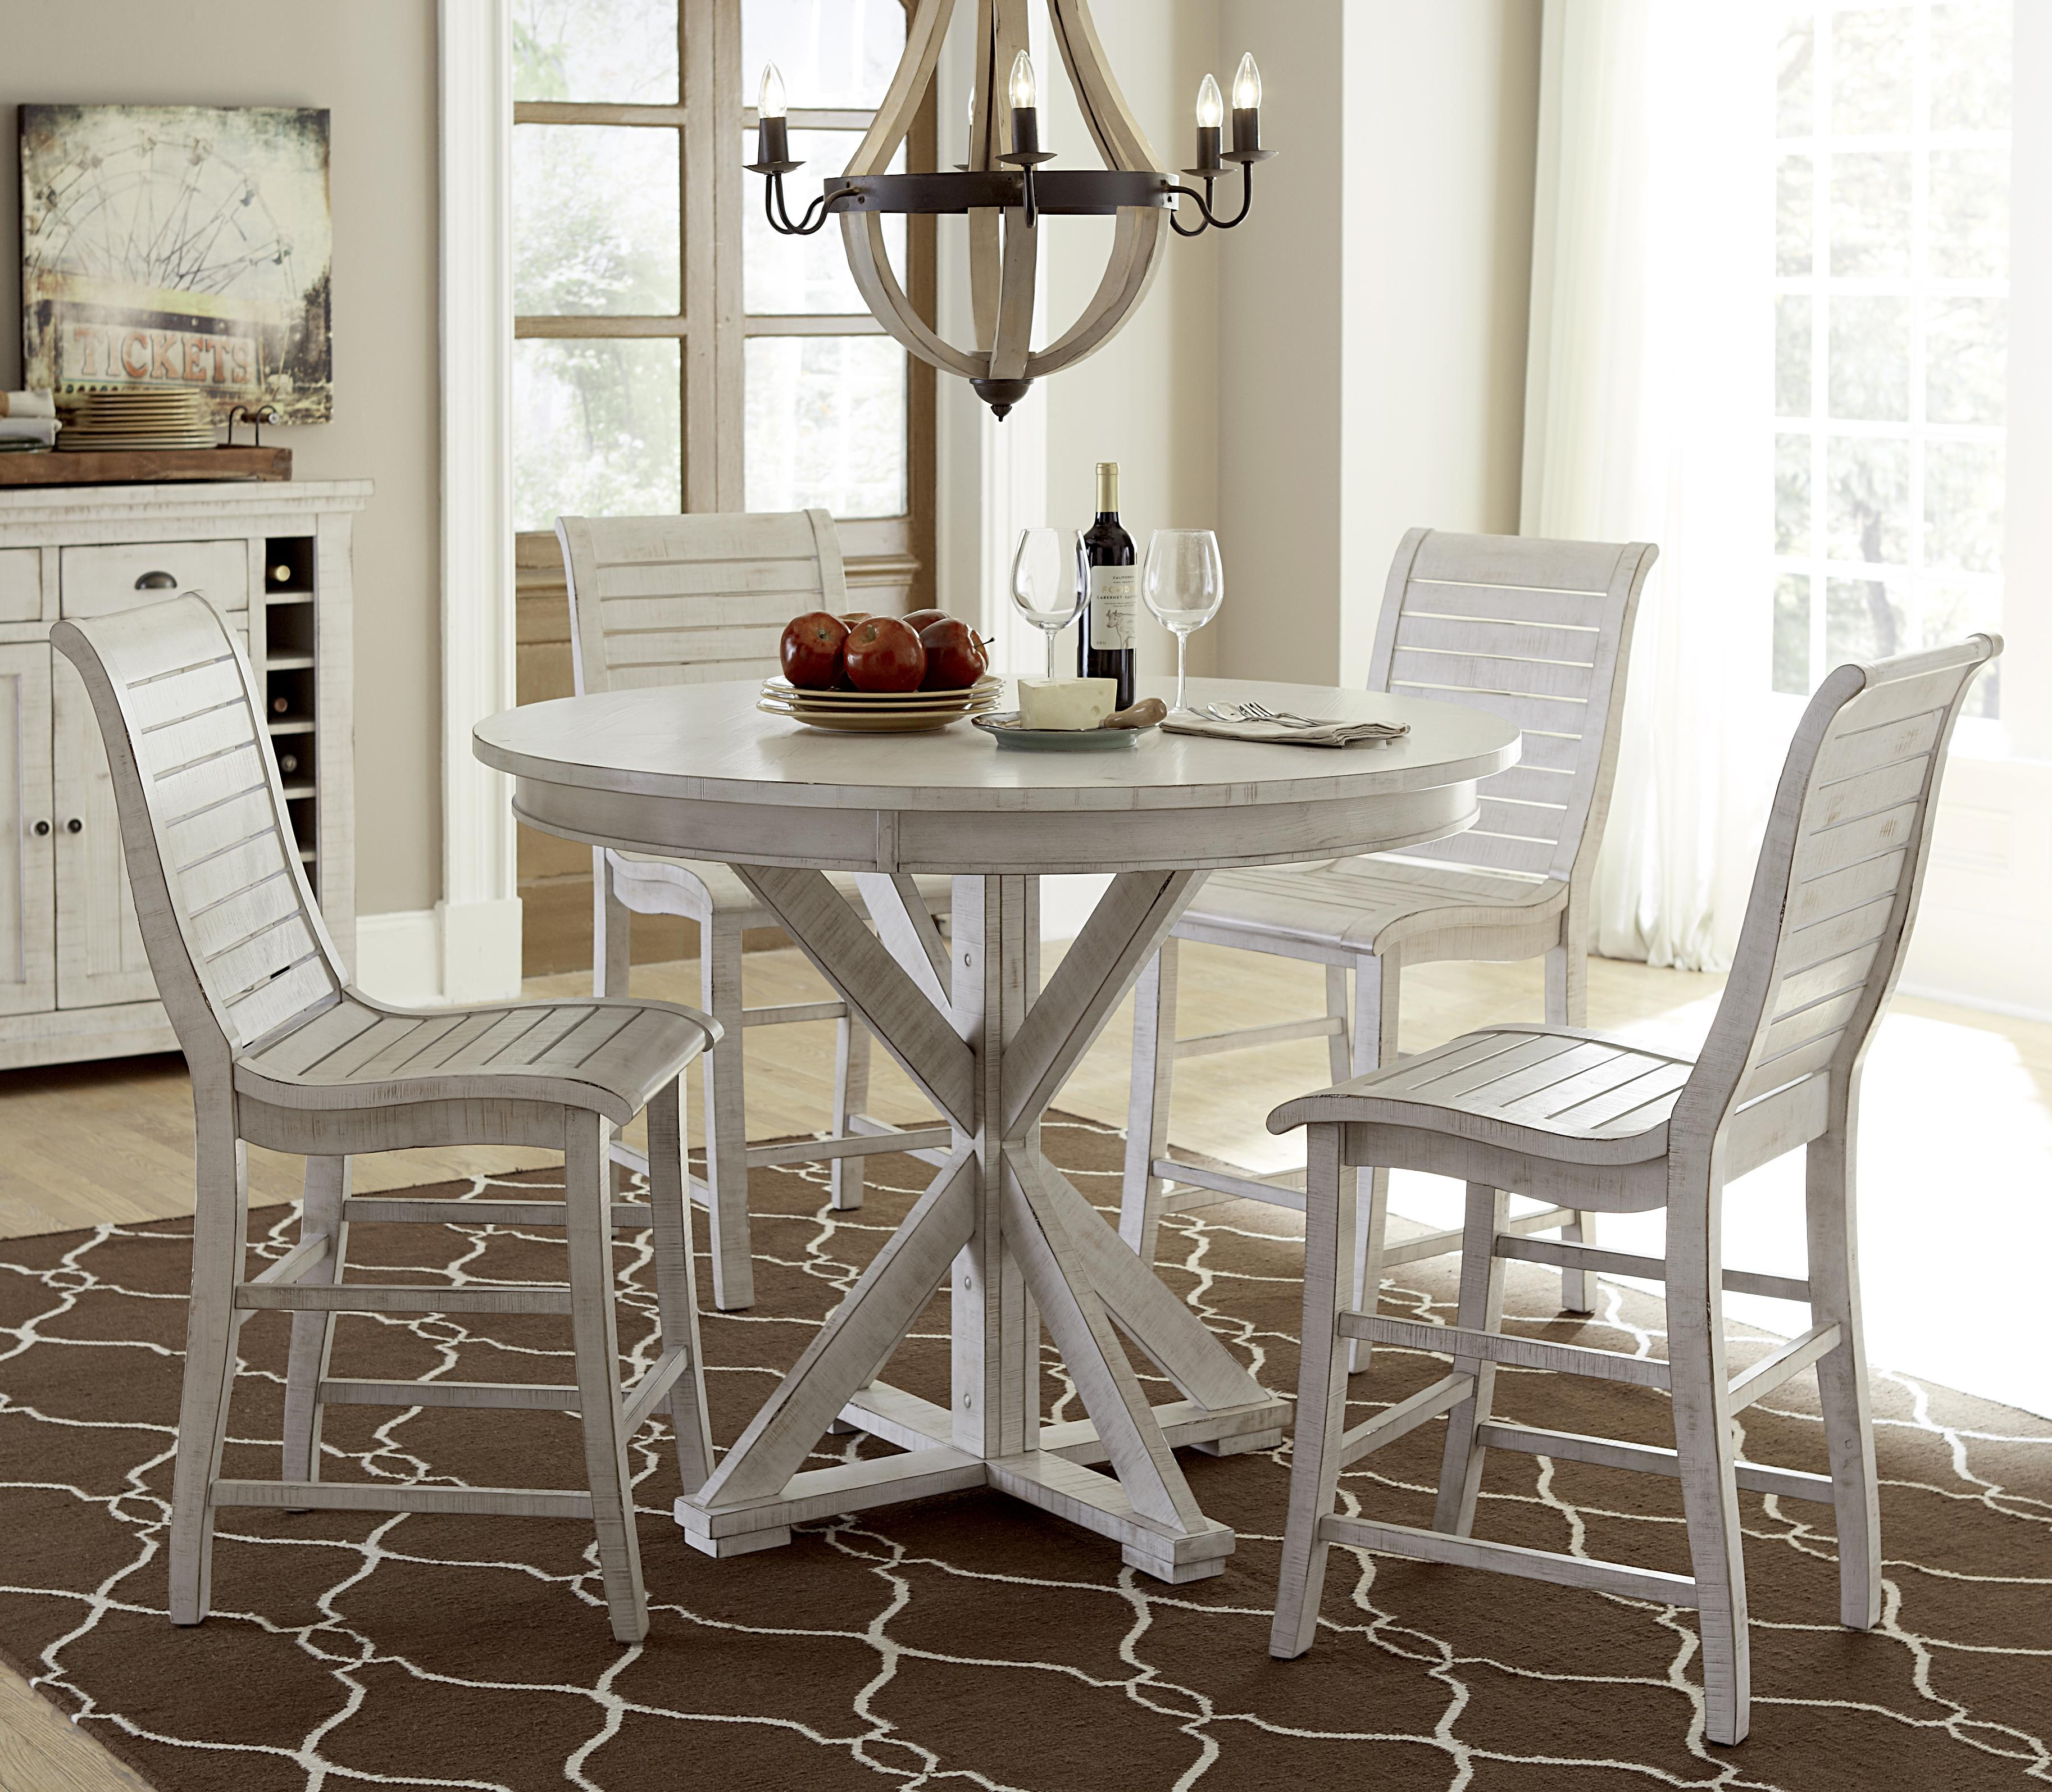 willow dining 5piece round counter height table set by progressive furniture